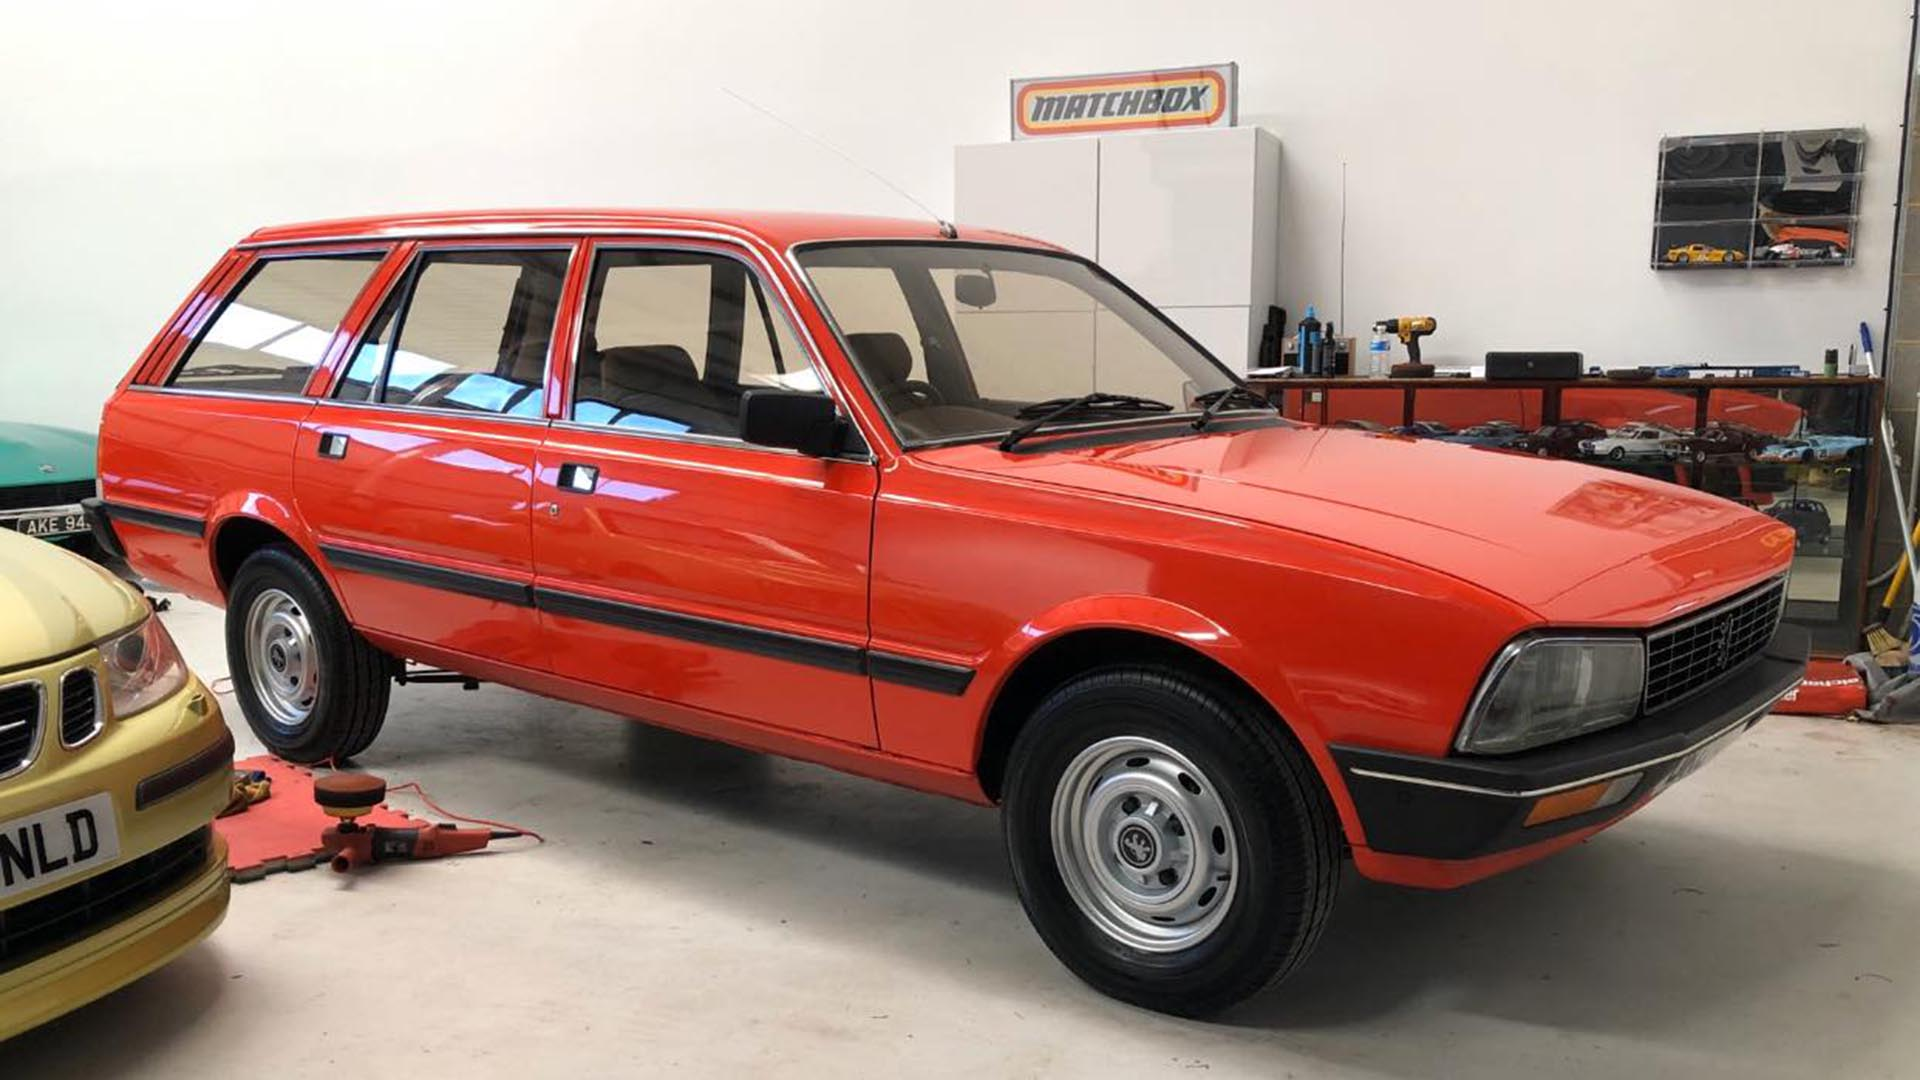 Peugeot 505 GR estate for sale